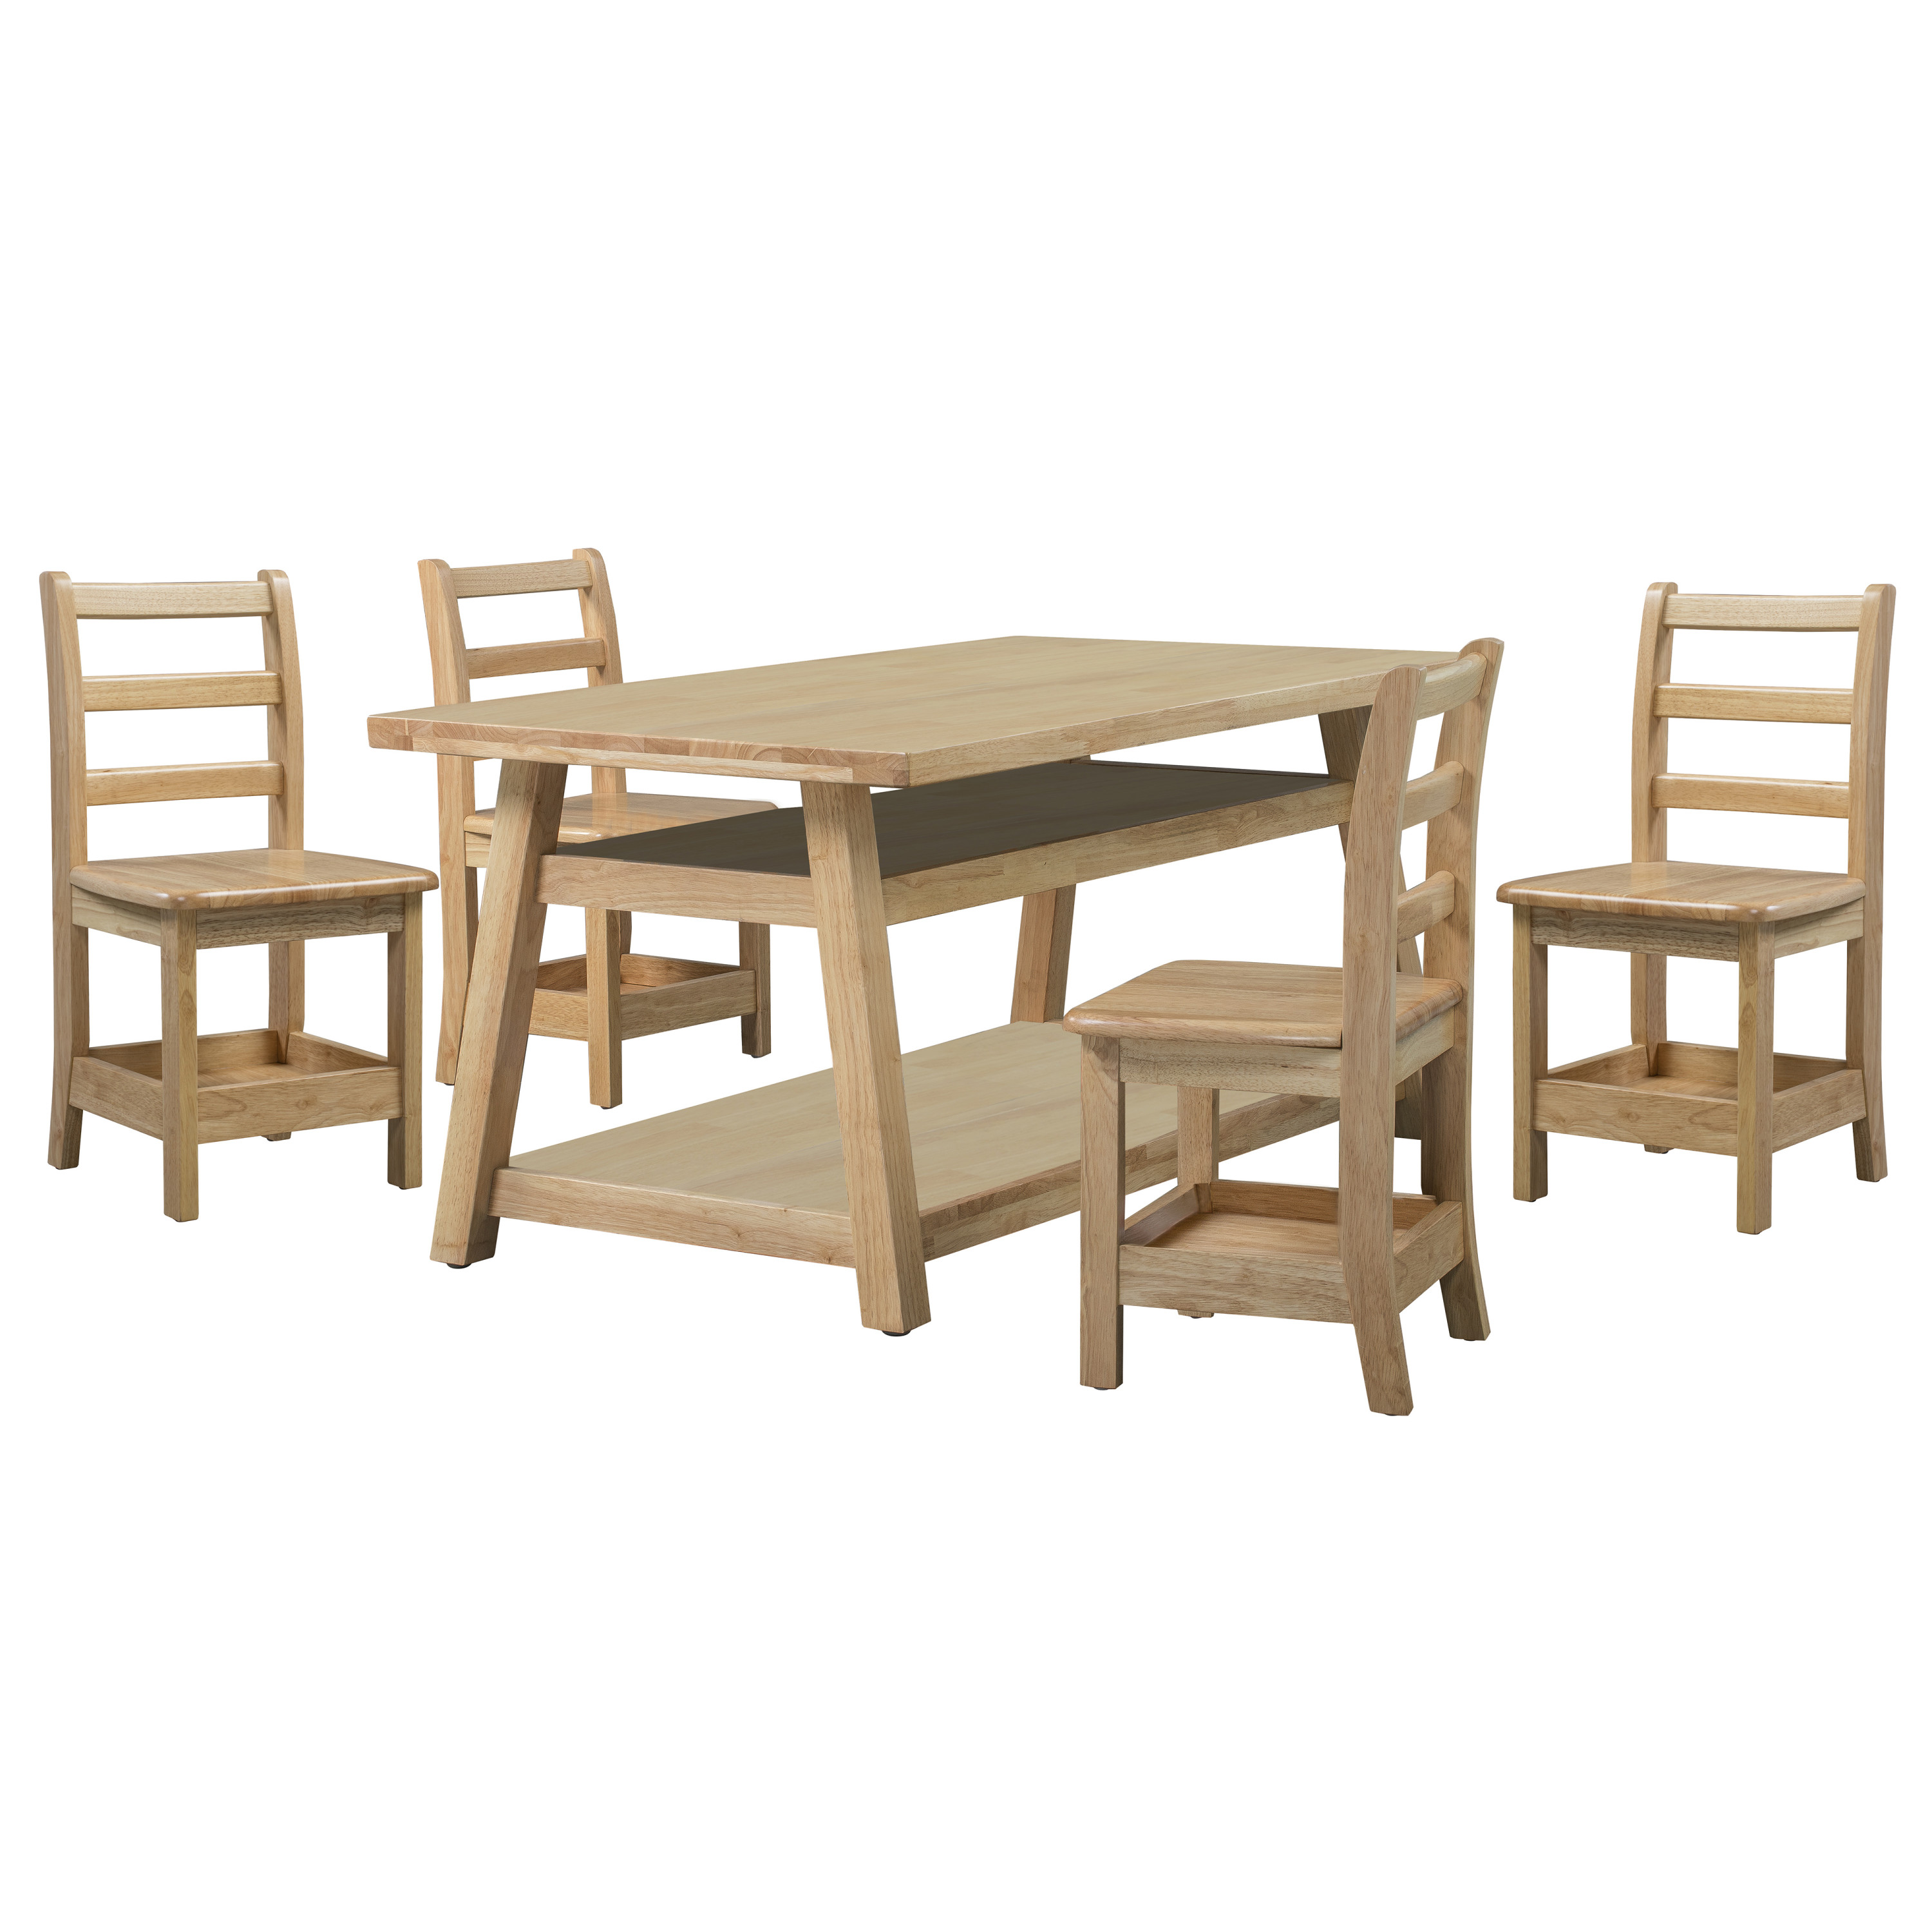 Sit n' Stash Rectangular Table and Four 14in Chairs